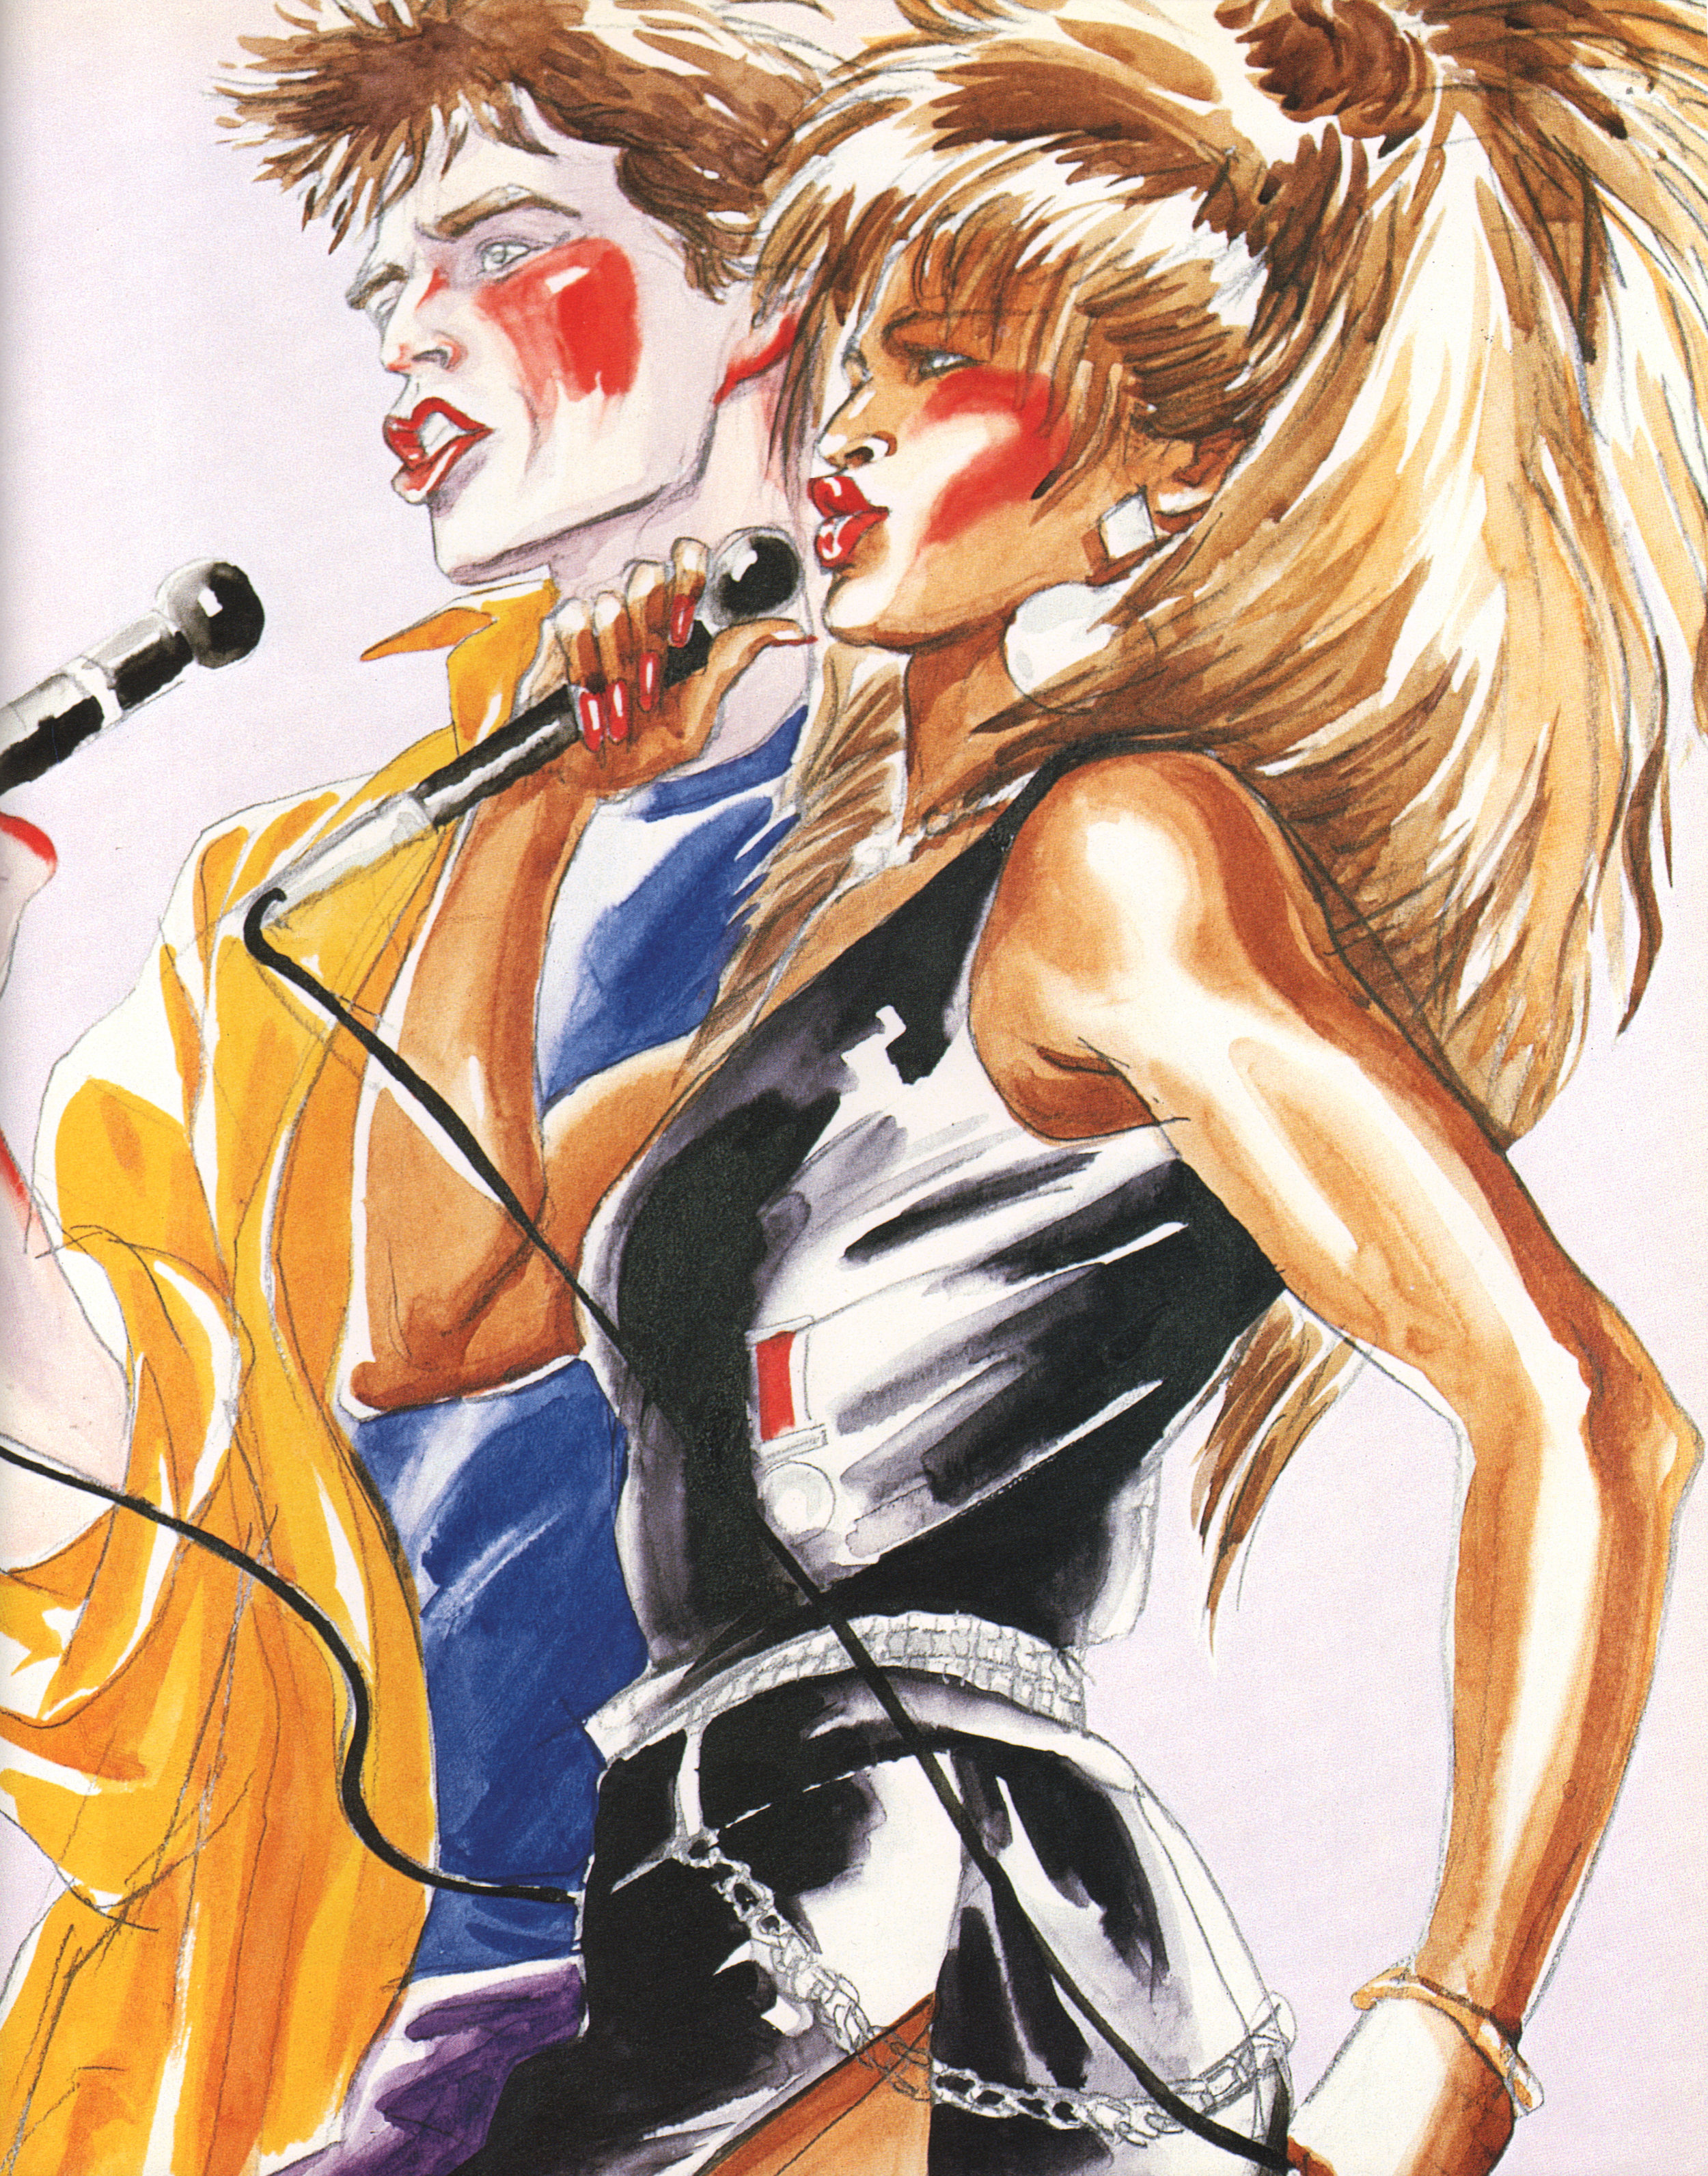 "Antonio Lopez, Tina Turner and Mick Jagger, 1986, Pencil/watercolor on paper, 17"" x 14"", Courtesy of the Estate of Antonio Lopez & Juan Ramos. Reproduced with permission from Museo del Barrio."